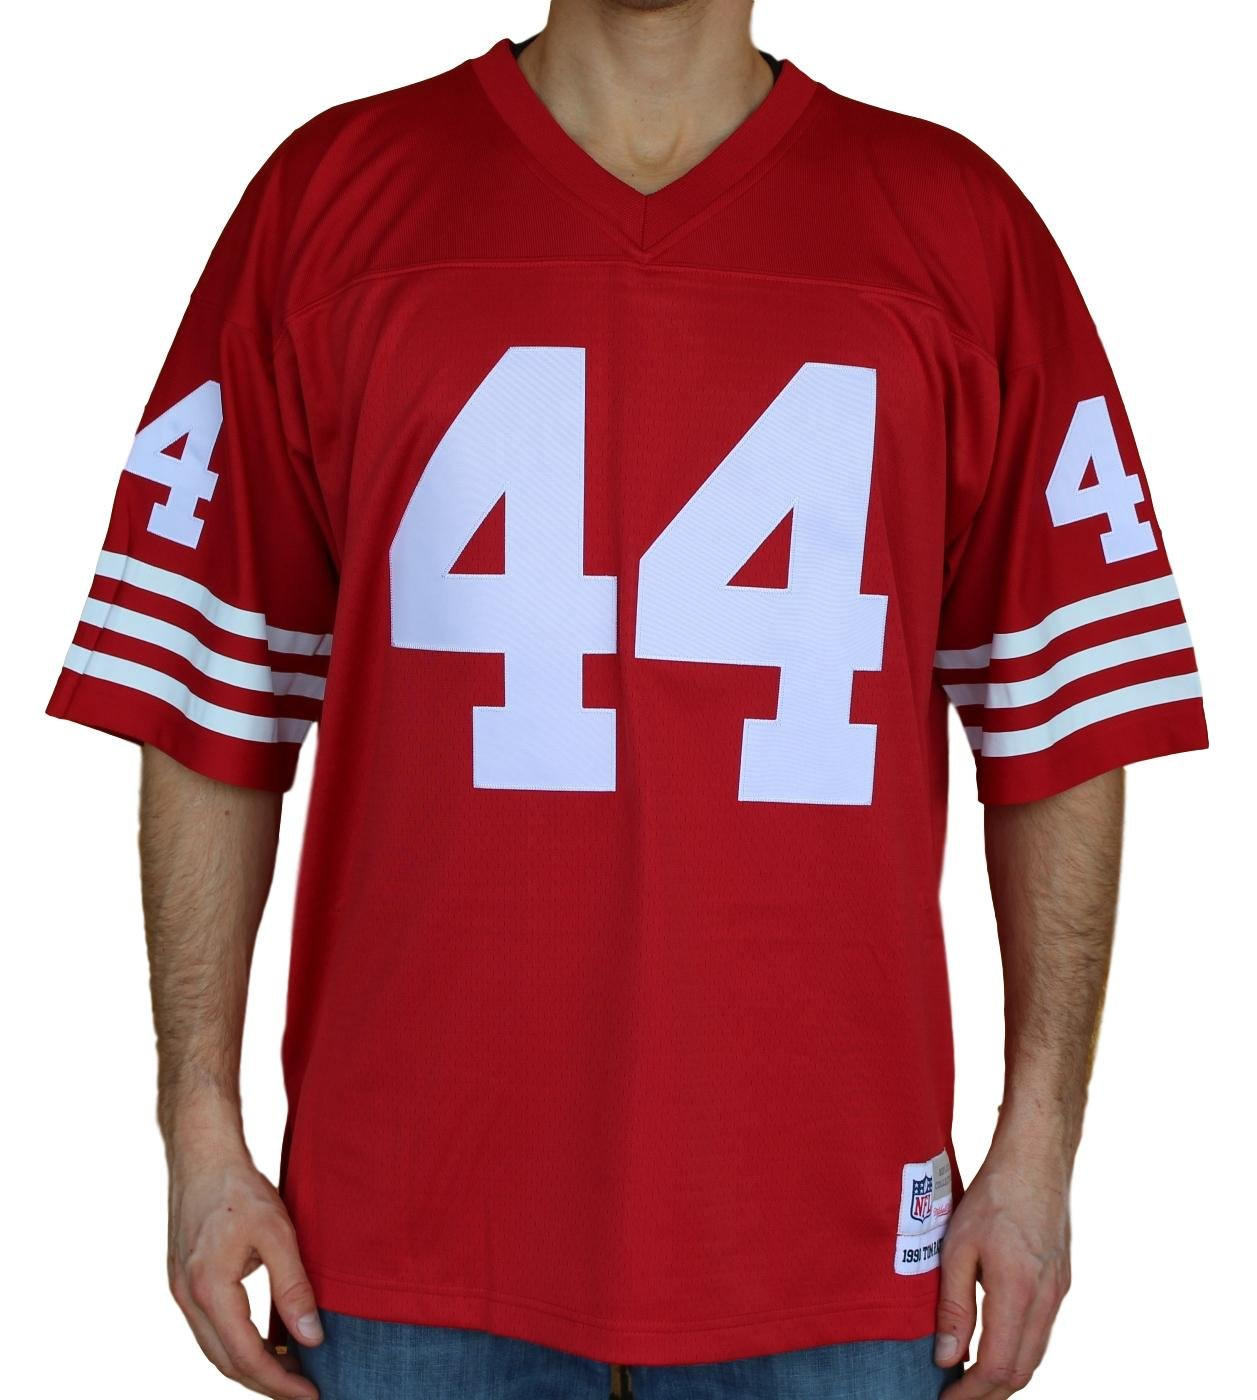 sneakers for cheap 44656 162d2 Amazon.com : Mitchell & Ness Tom Rathman San Francisco 49ers ...